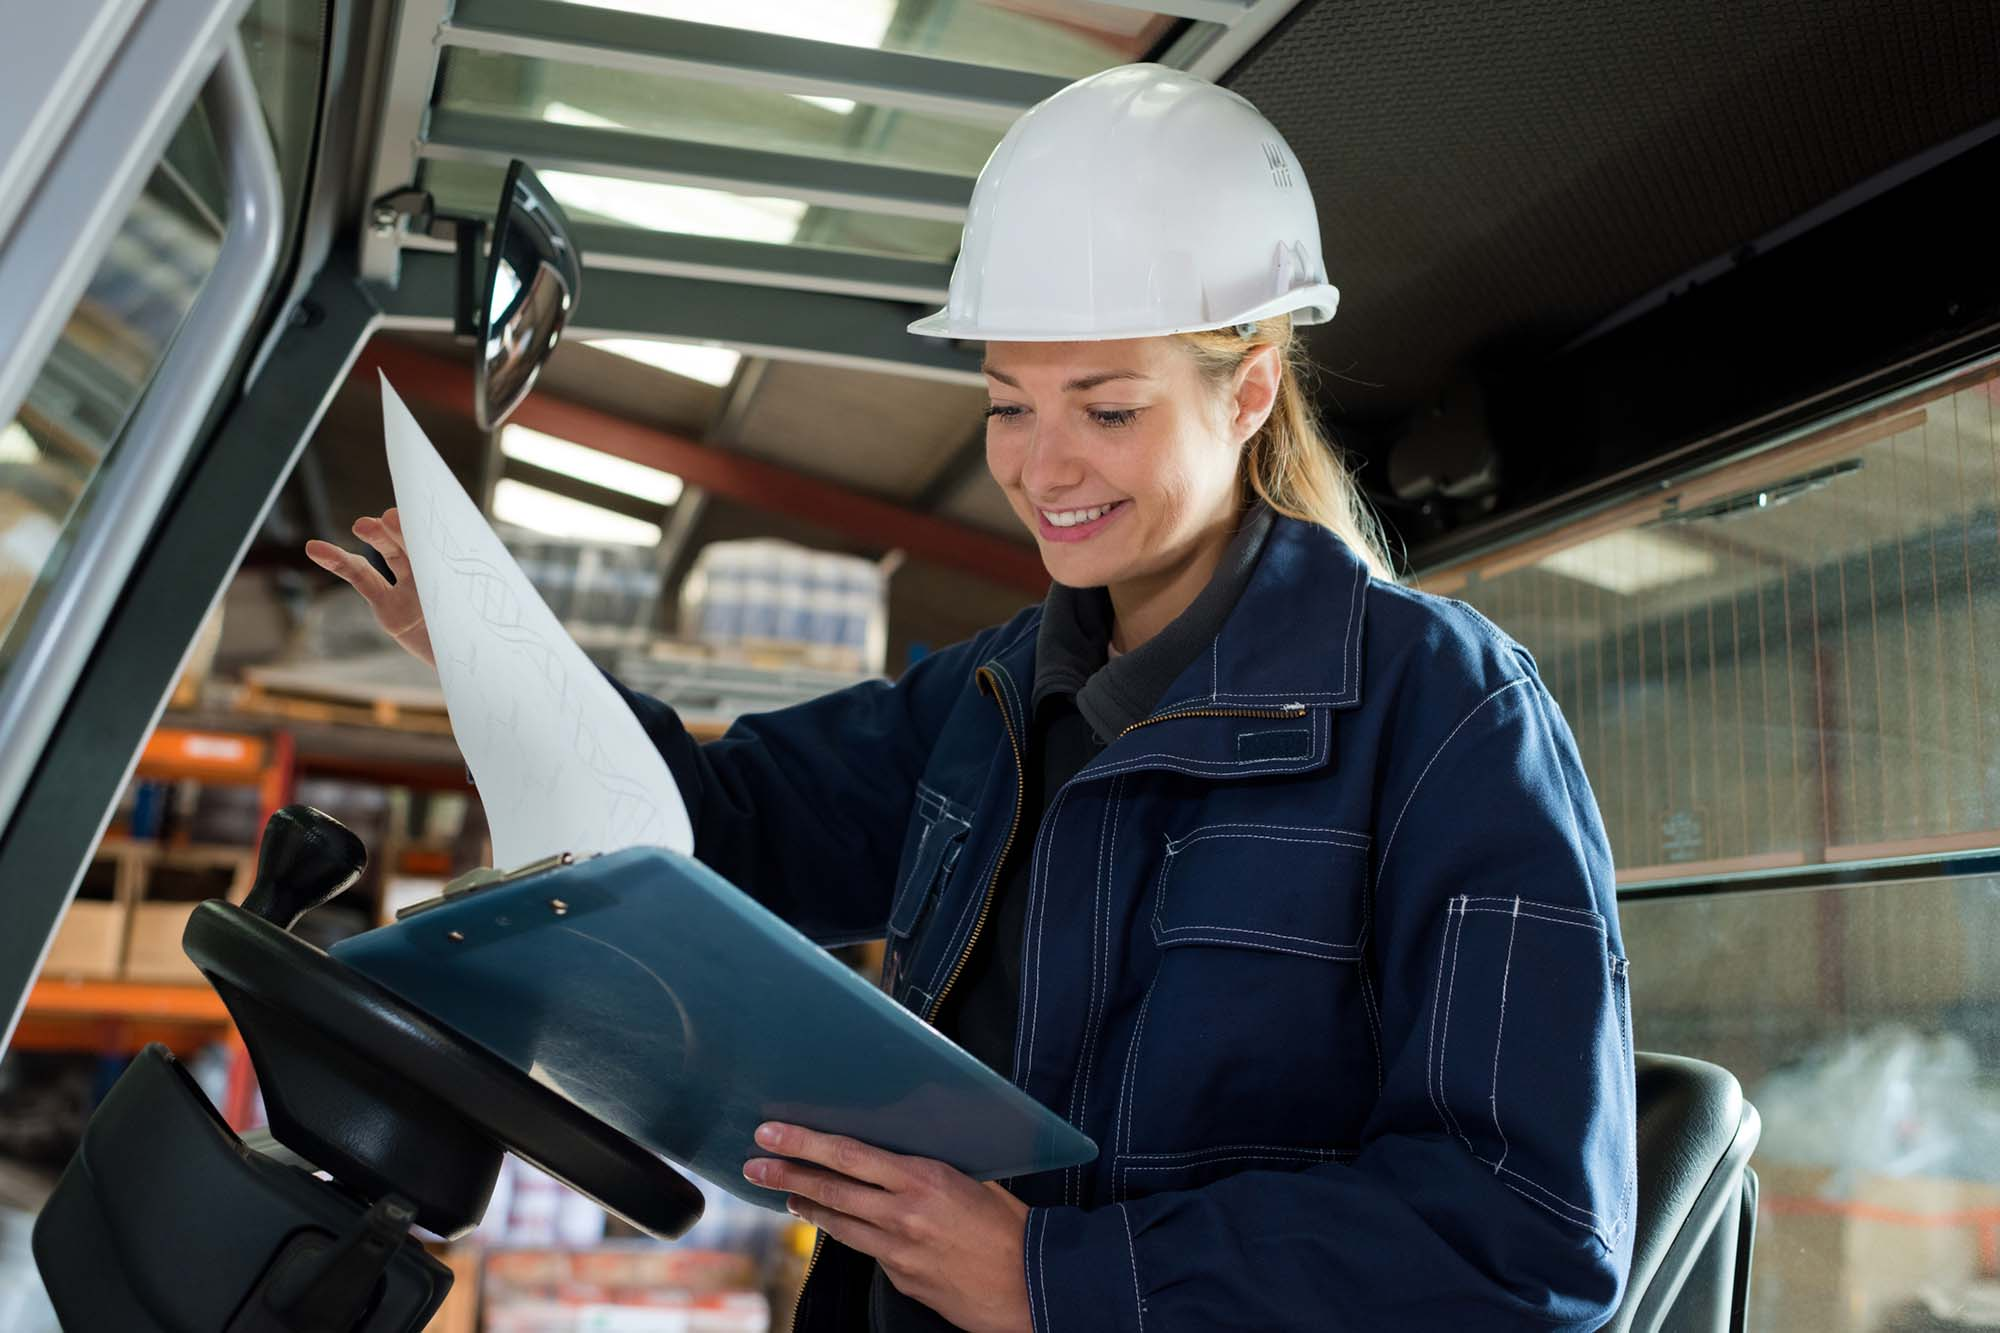 Woman looking a documents while using forklift